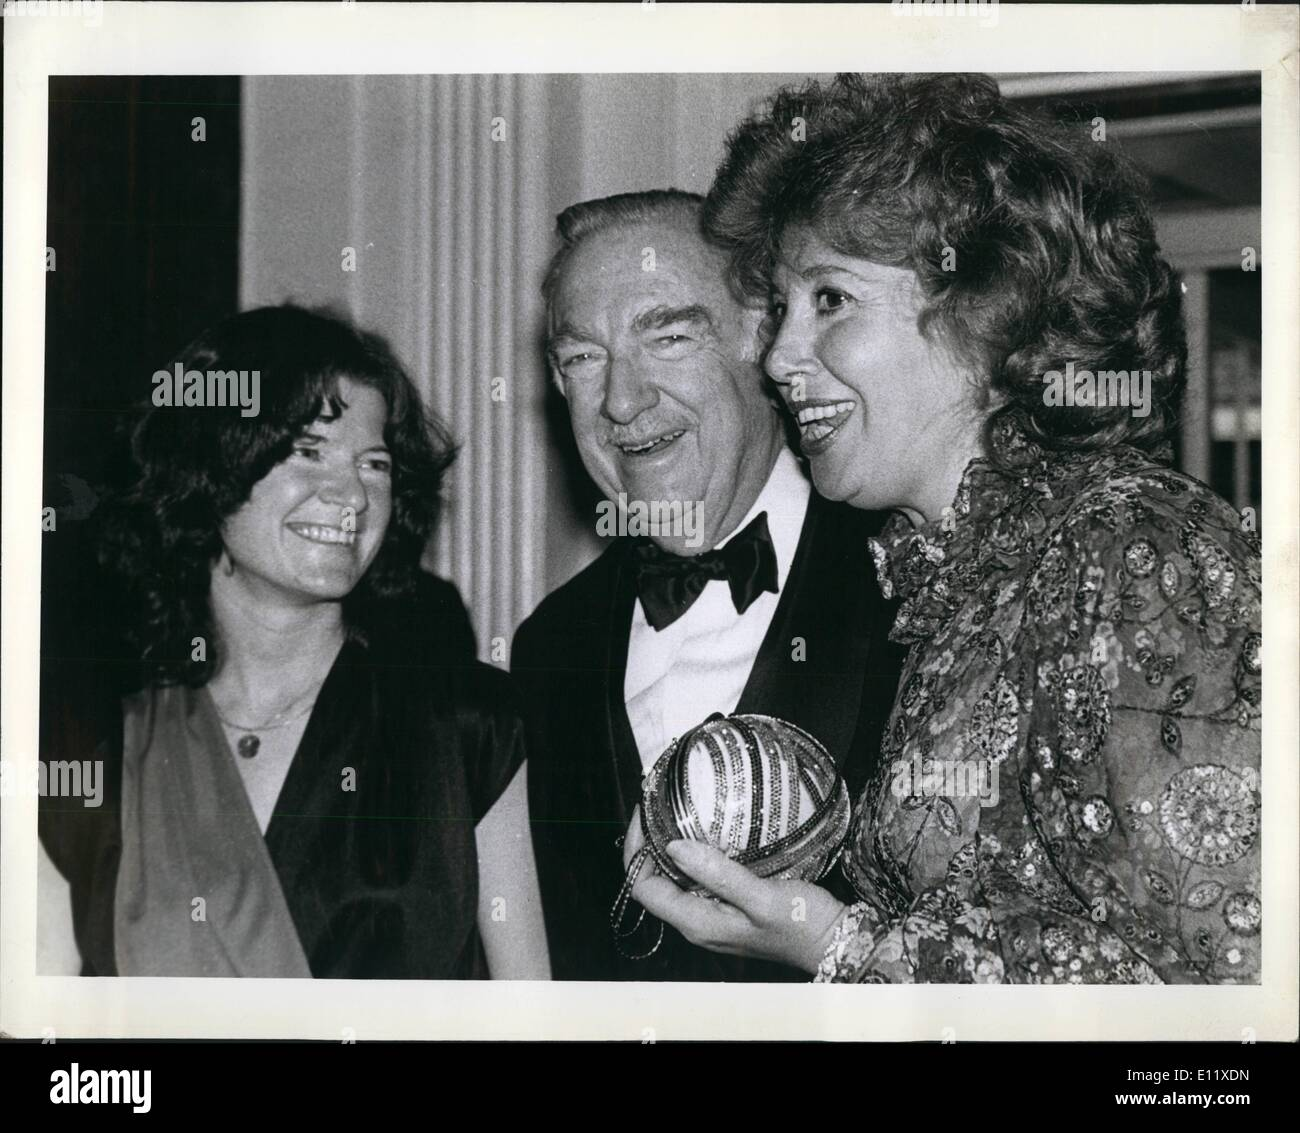 Feb. 02, 1981 - New York City. Feb. 18, 1981 Waldorf-Astoria The Scientists' Institute for Public Information hold a dinner-dance honoring CBS Newsman Walter Cronkite. Left to right are; Dr. Sally Ride, Astronaut (NASA Space Shuttle Program), Walter Cronkite, CBS and Beverly Sills, opera star and Mistress of Ceremonies. - Stock Image